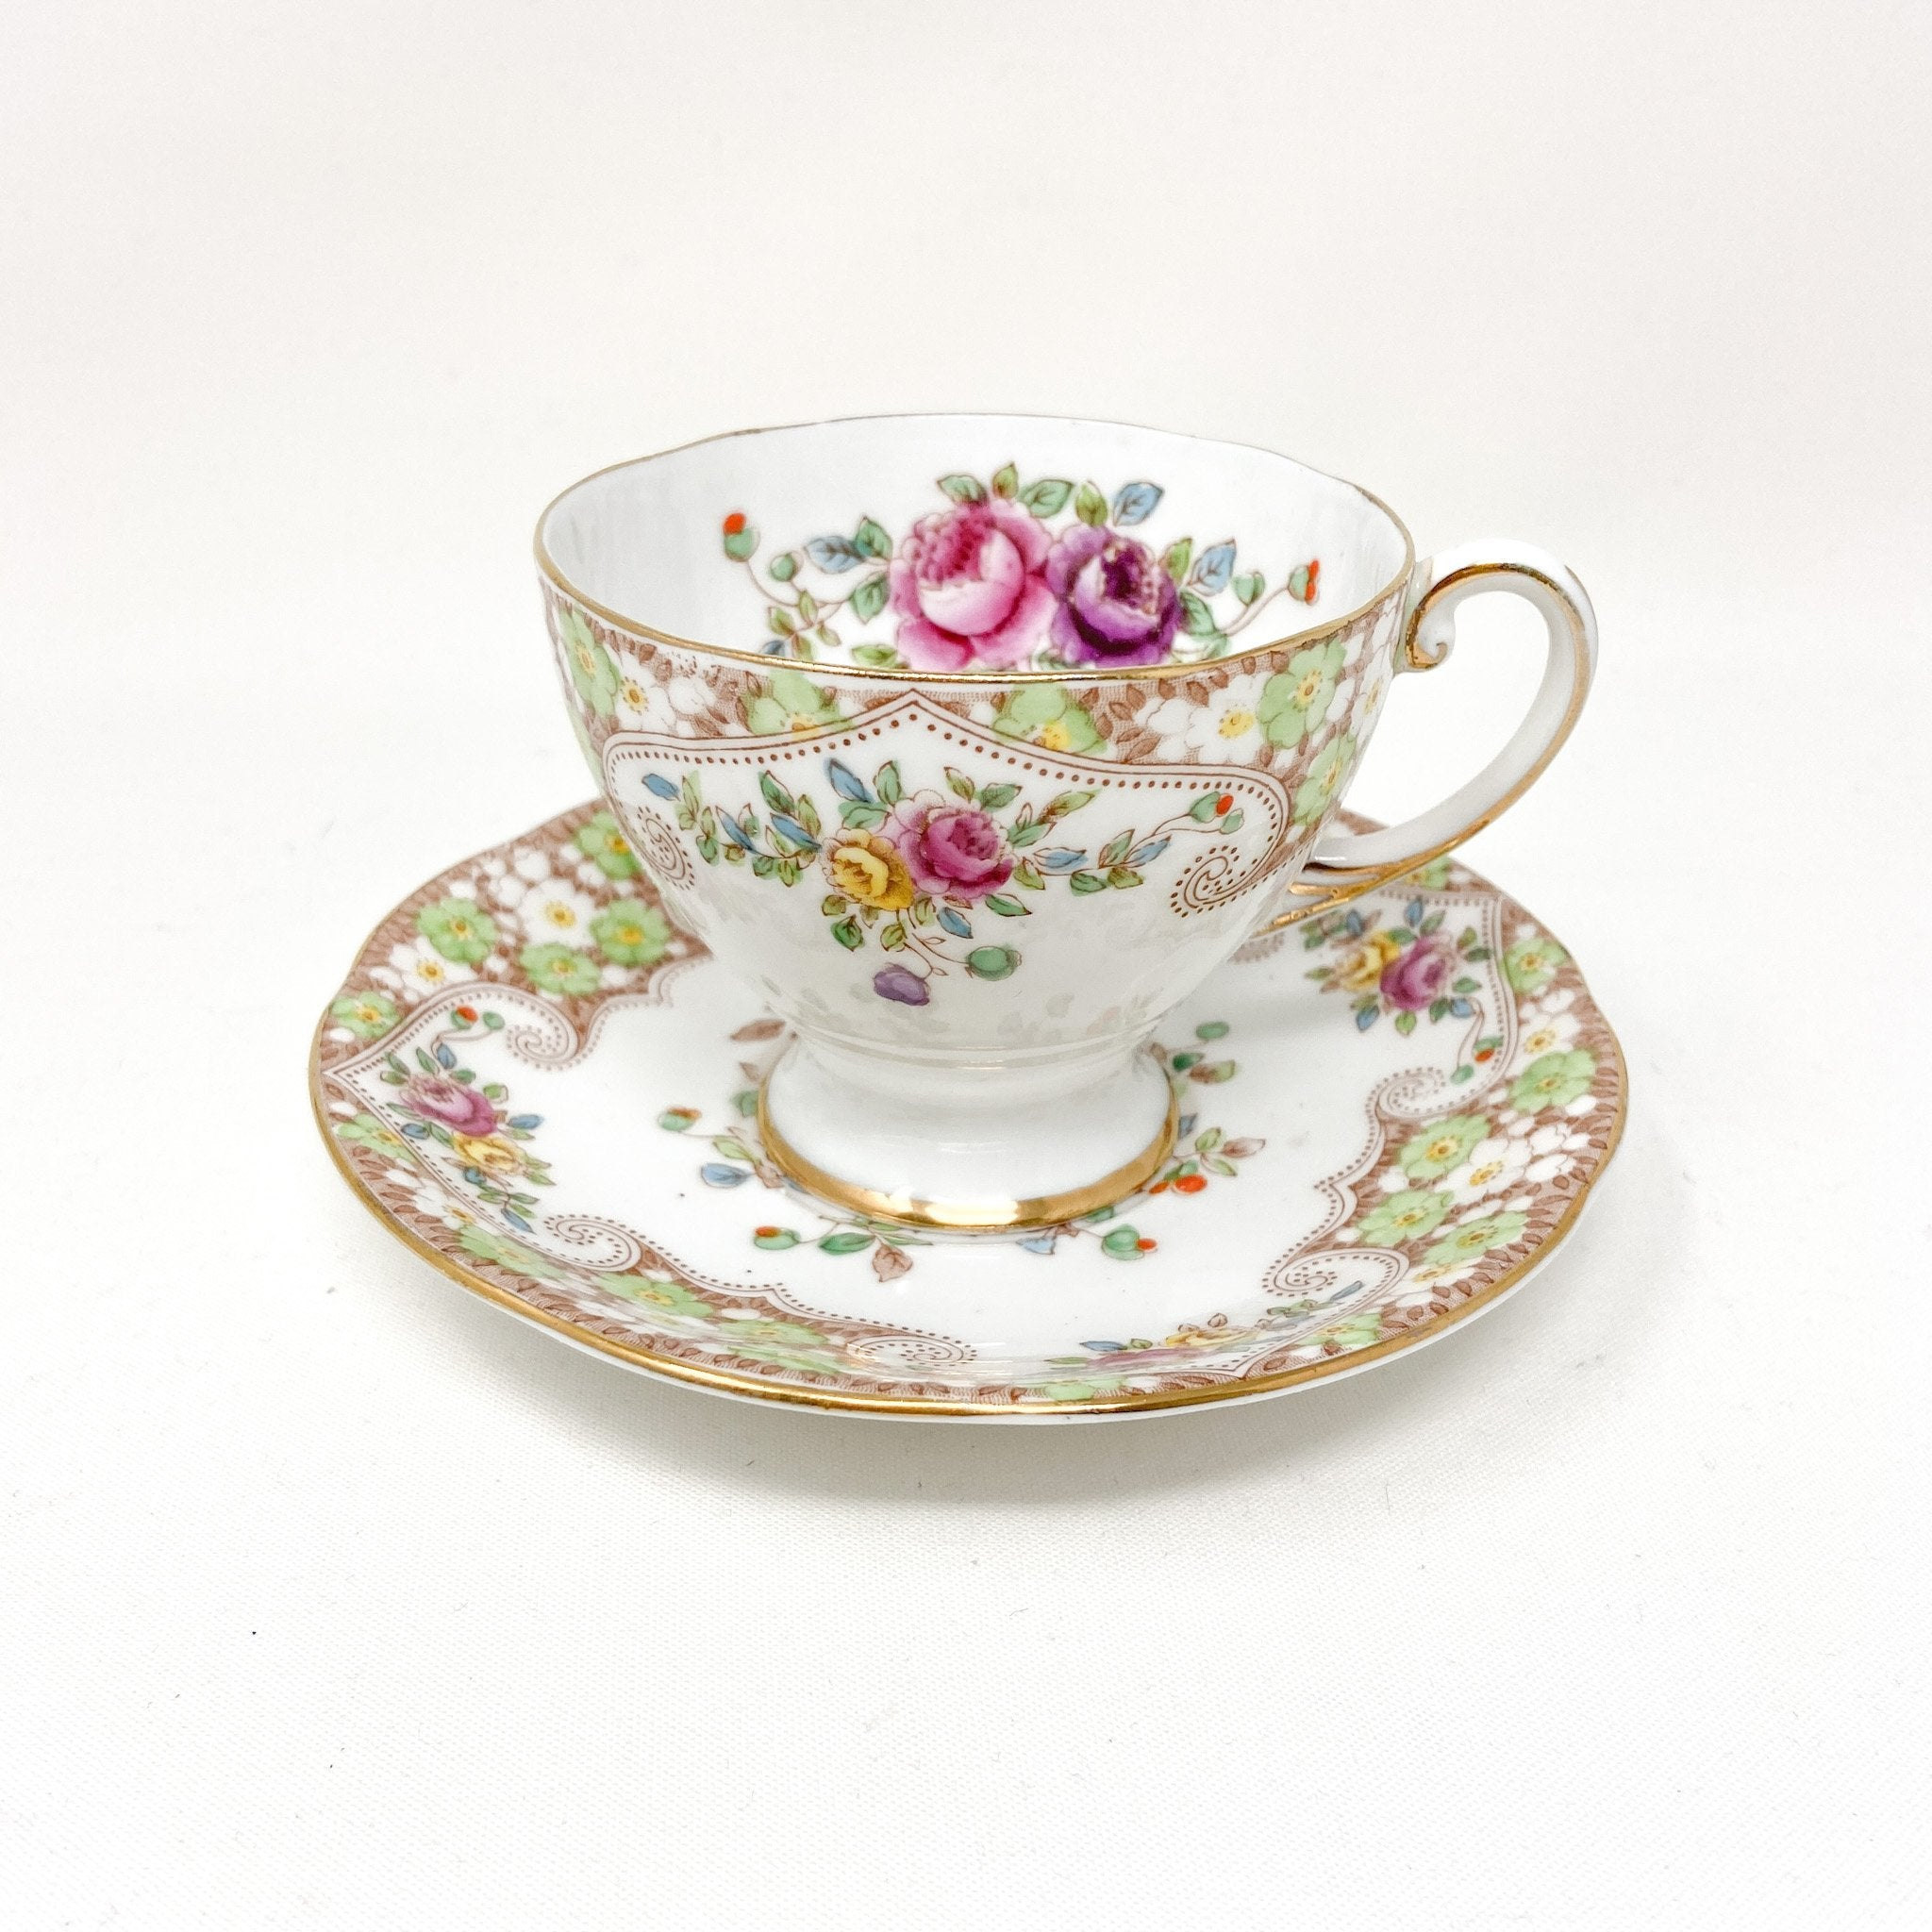 Royal Standard Rosemary | Teacup, Saucer & Strainer | The Brooklyn Teacup - without the strainer